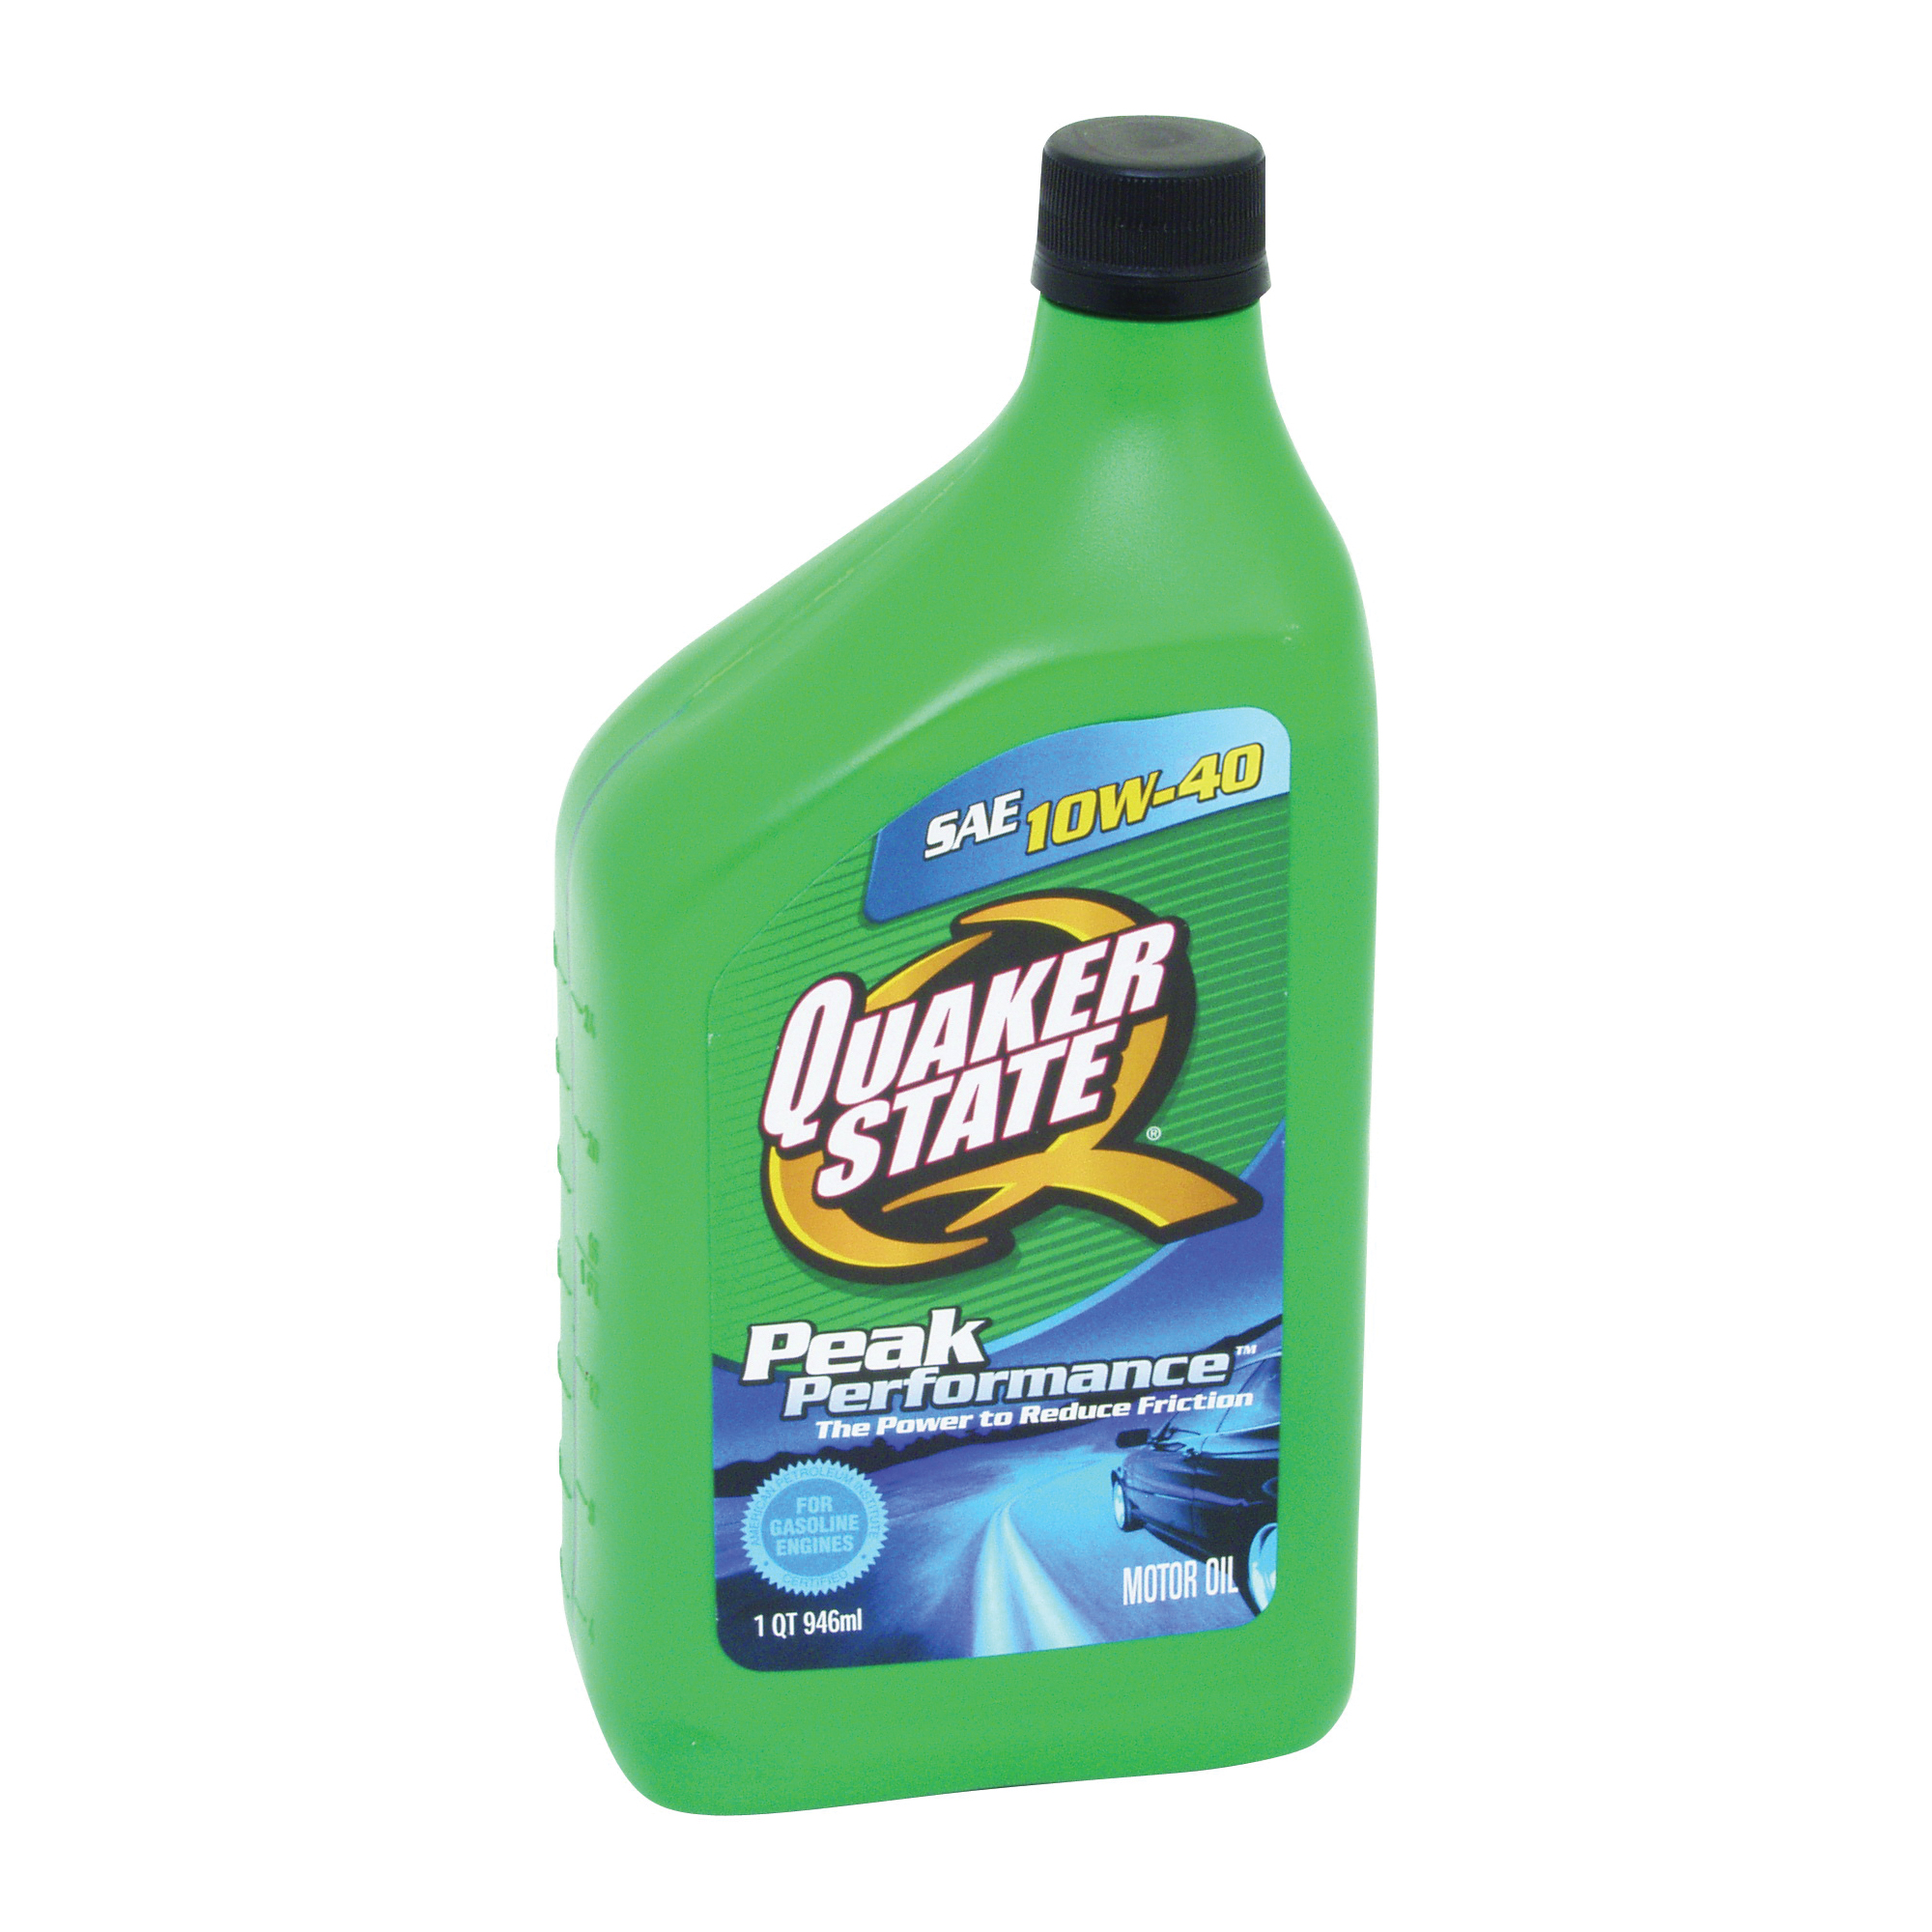 Picture of Quaker State Advanced Durability 550034964/5500240 Motor Oil, 10W-40, 1 qt Package, Bottle